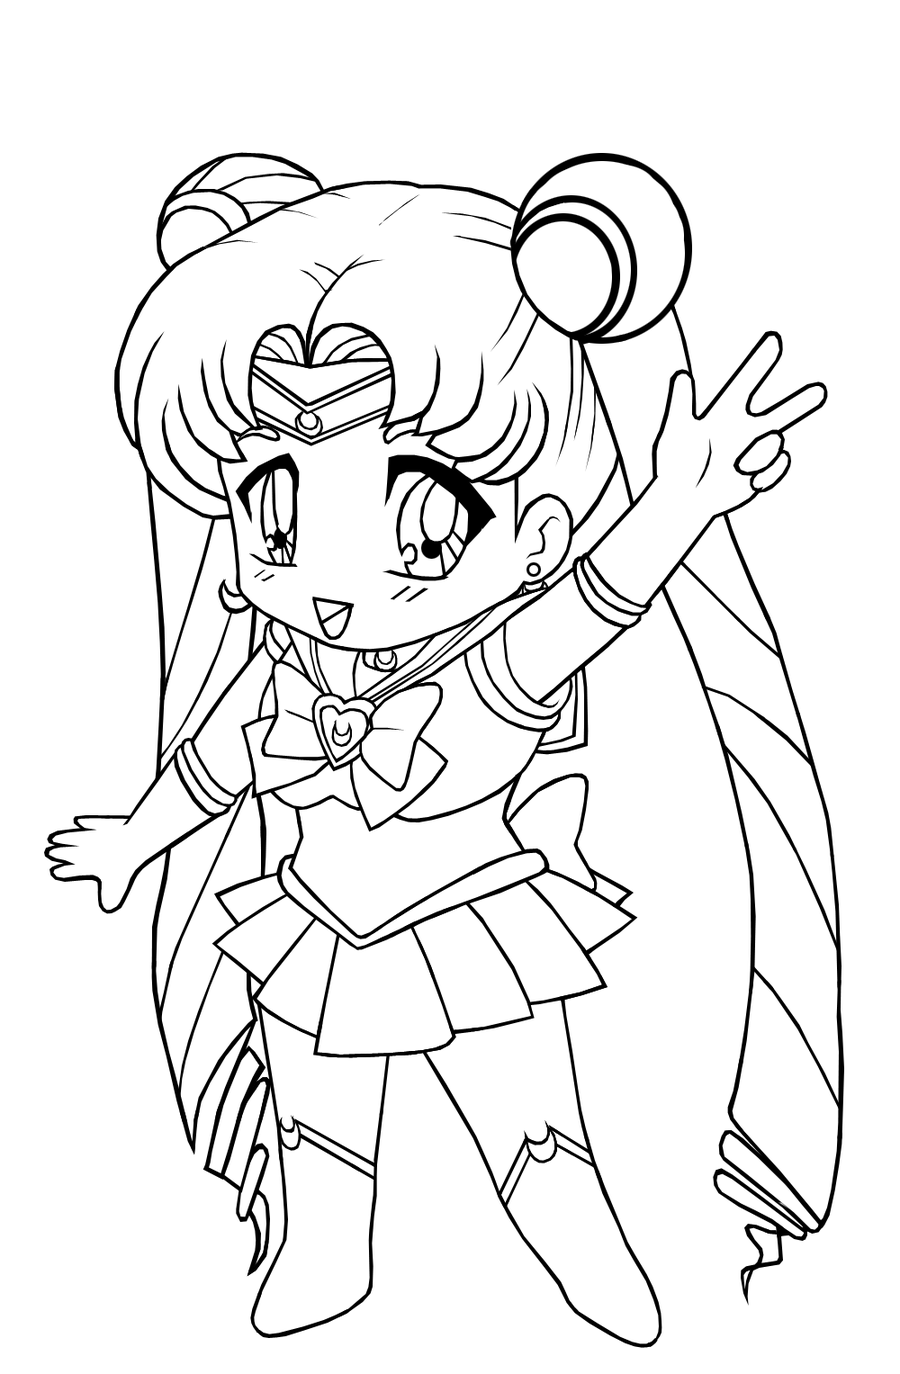 Free printable chibi coloring pages for kids for Free printable coloring pages for girls